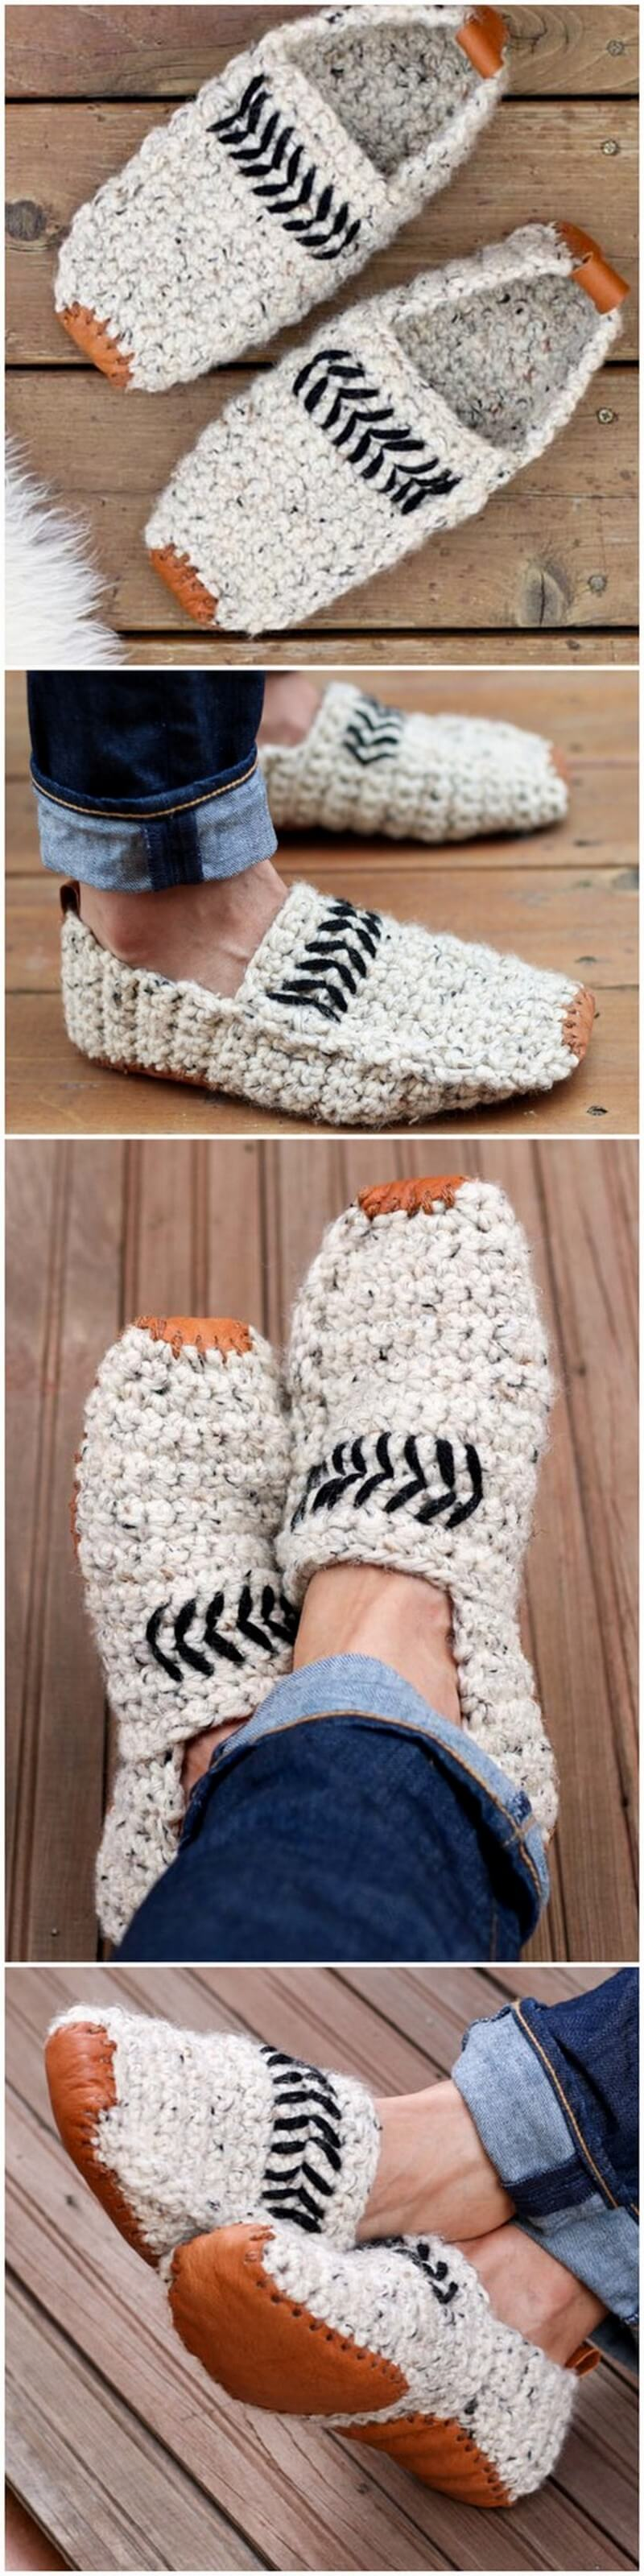 Crochet Slipper Pattern (14)